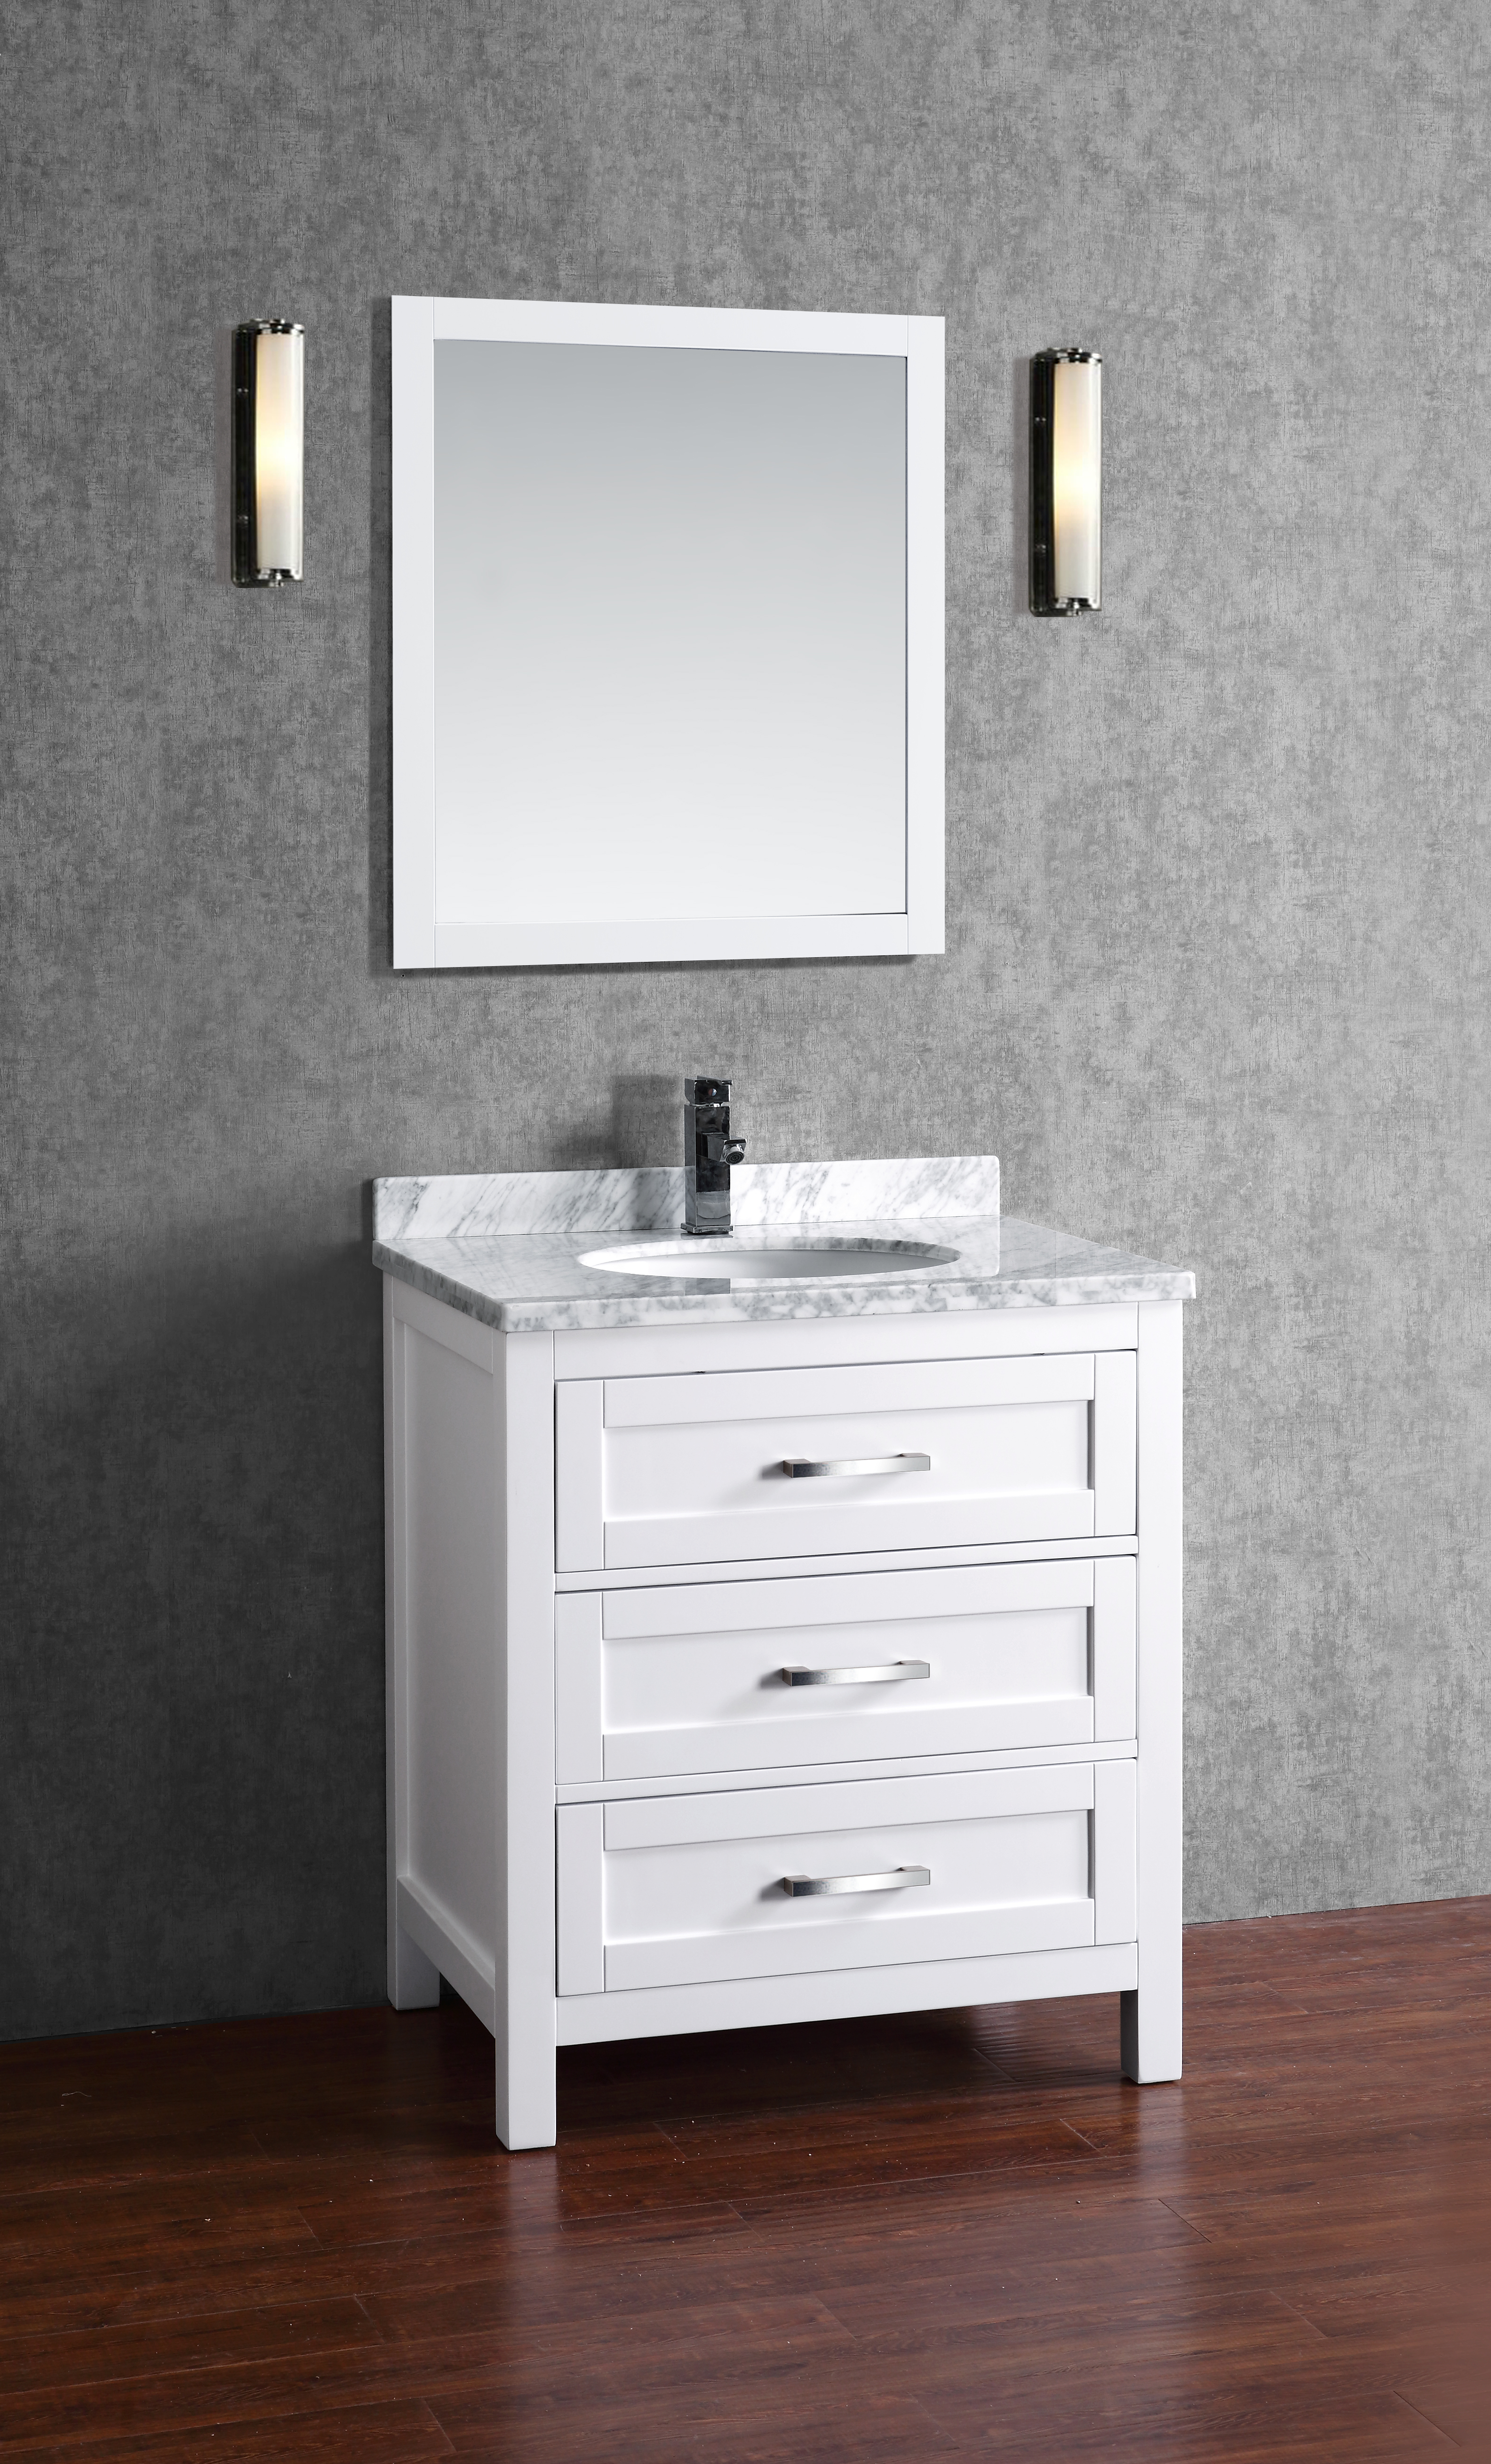 white 30 bathroom vanity toscana 30 inch white vanity ak trading home options 21378